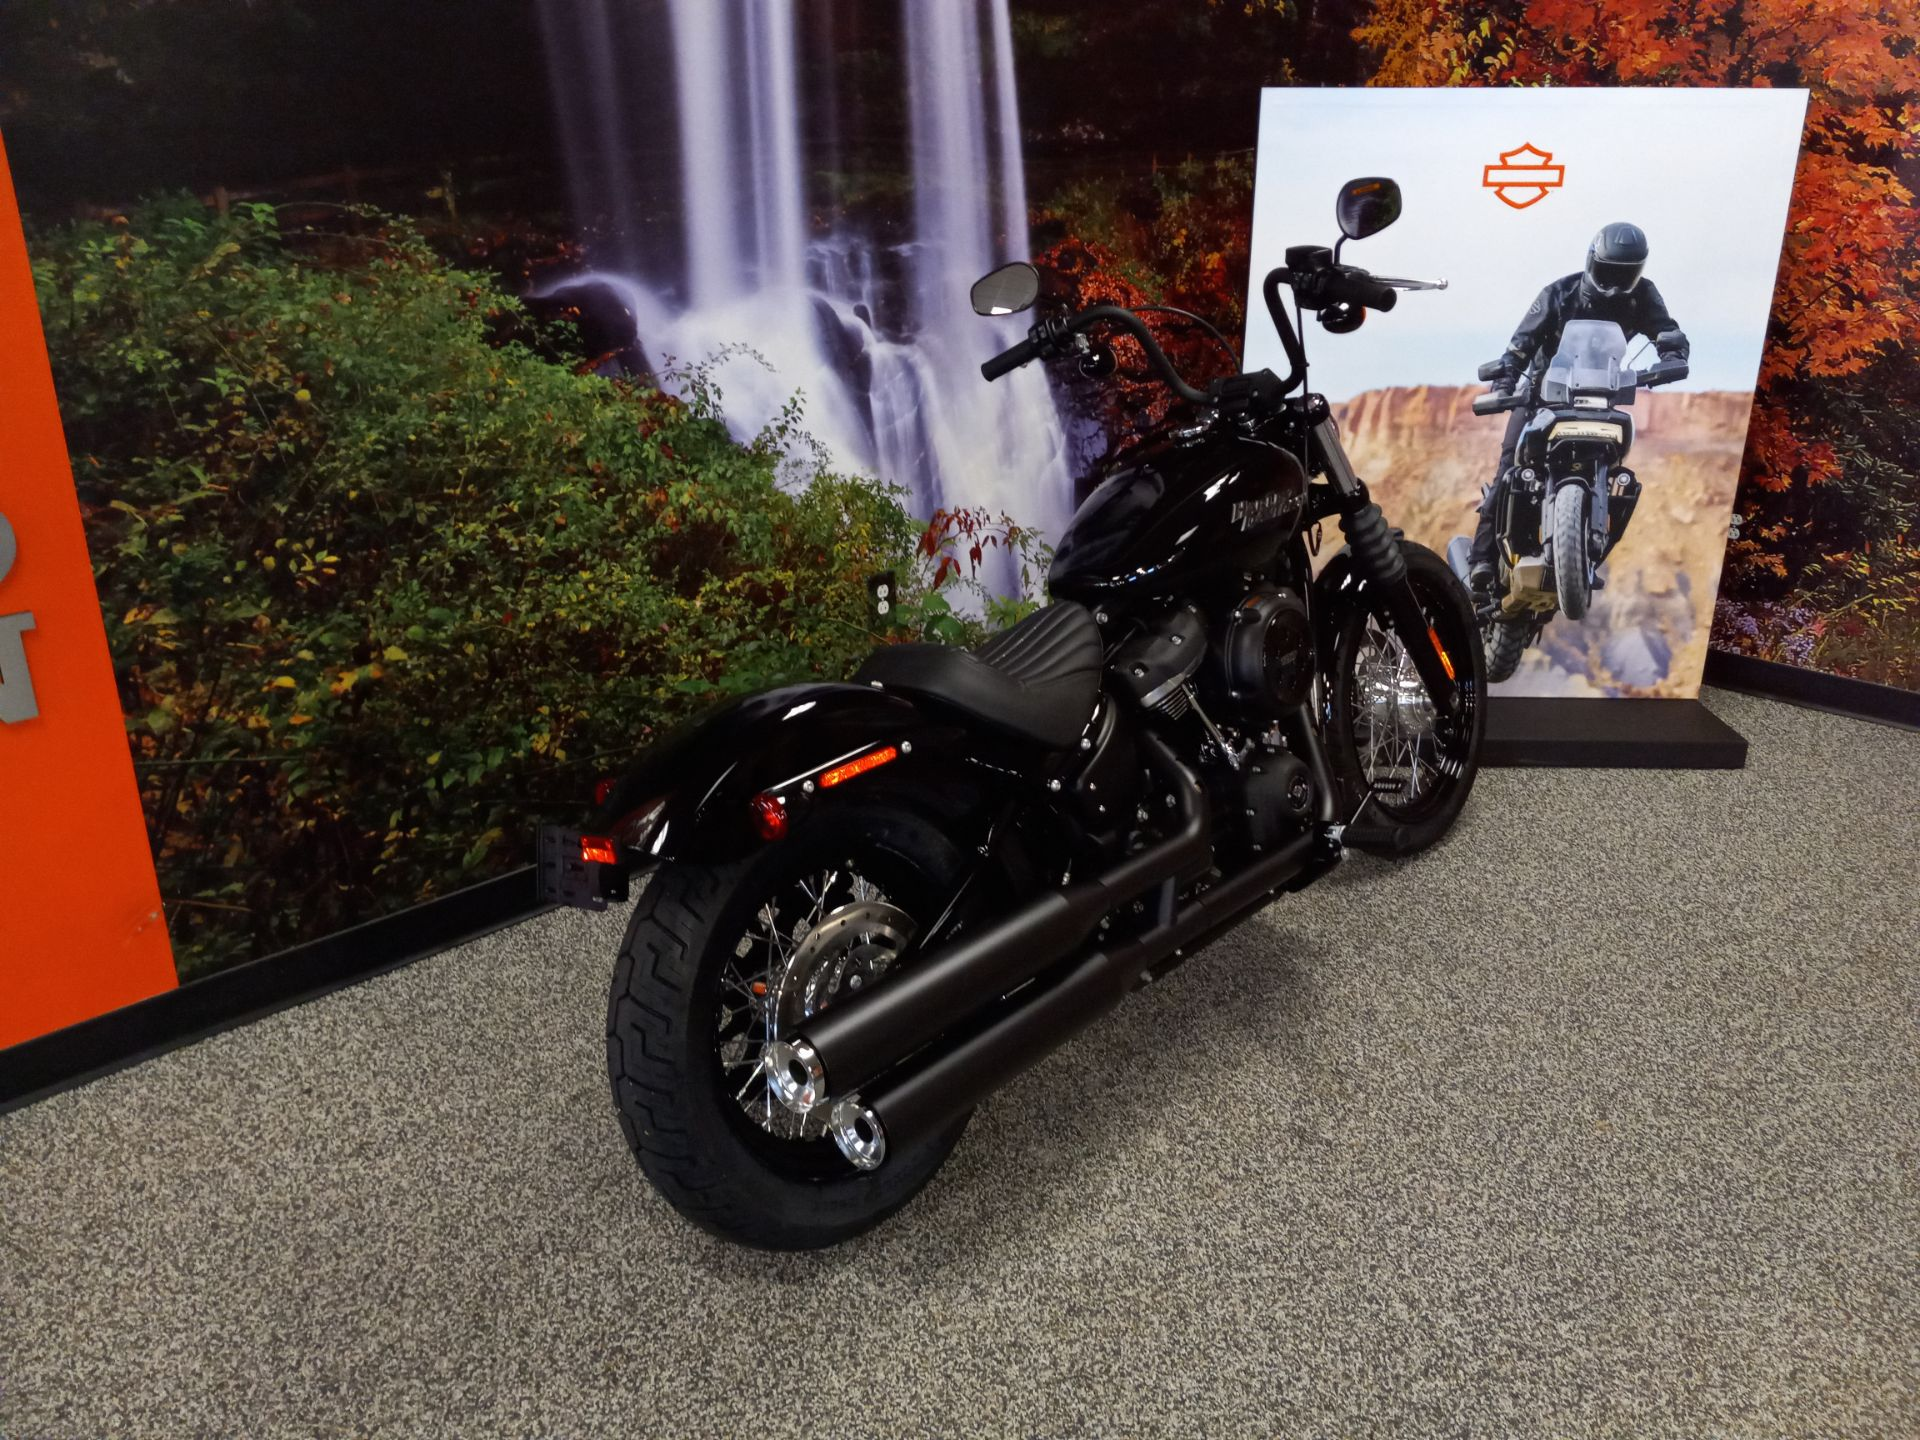 2020 Harley-Davidson Street Bob in Knoxville, Tennessee - Photo 4